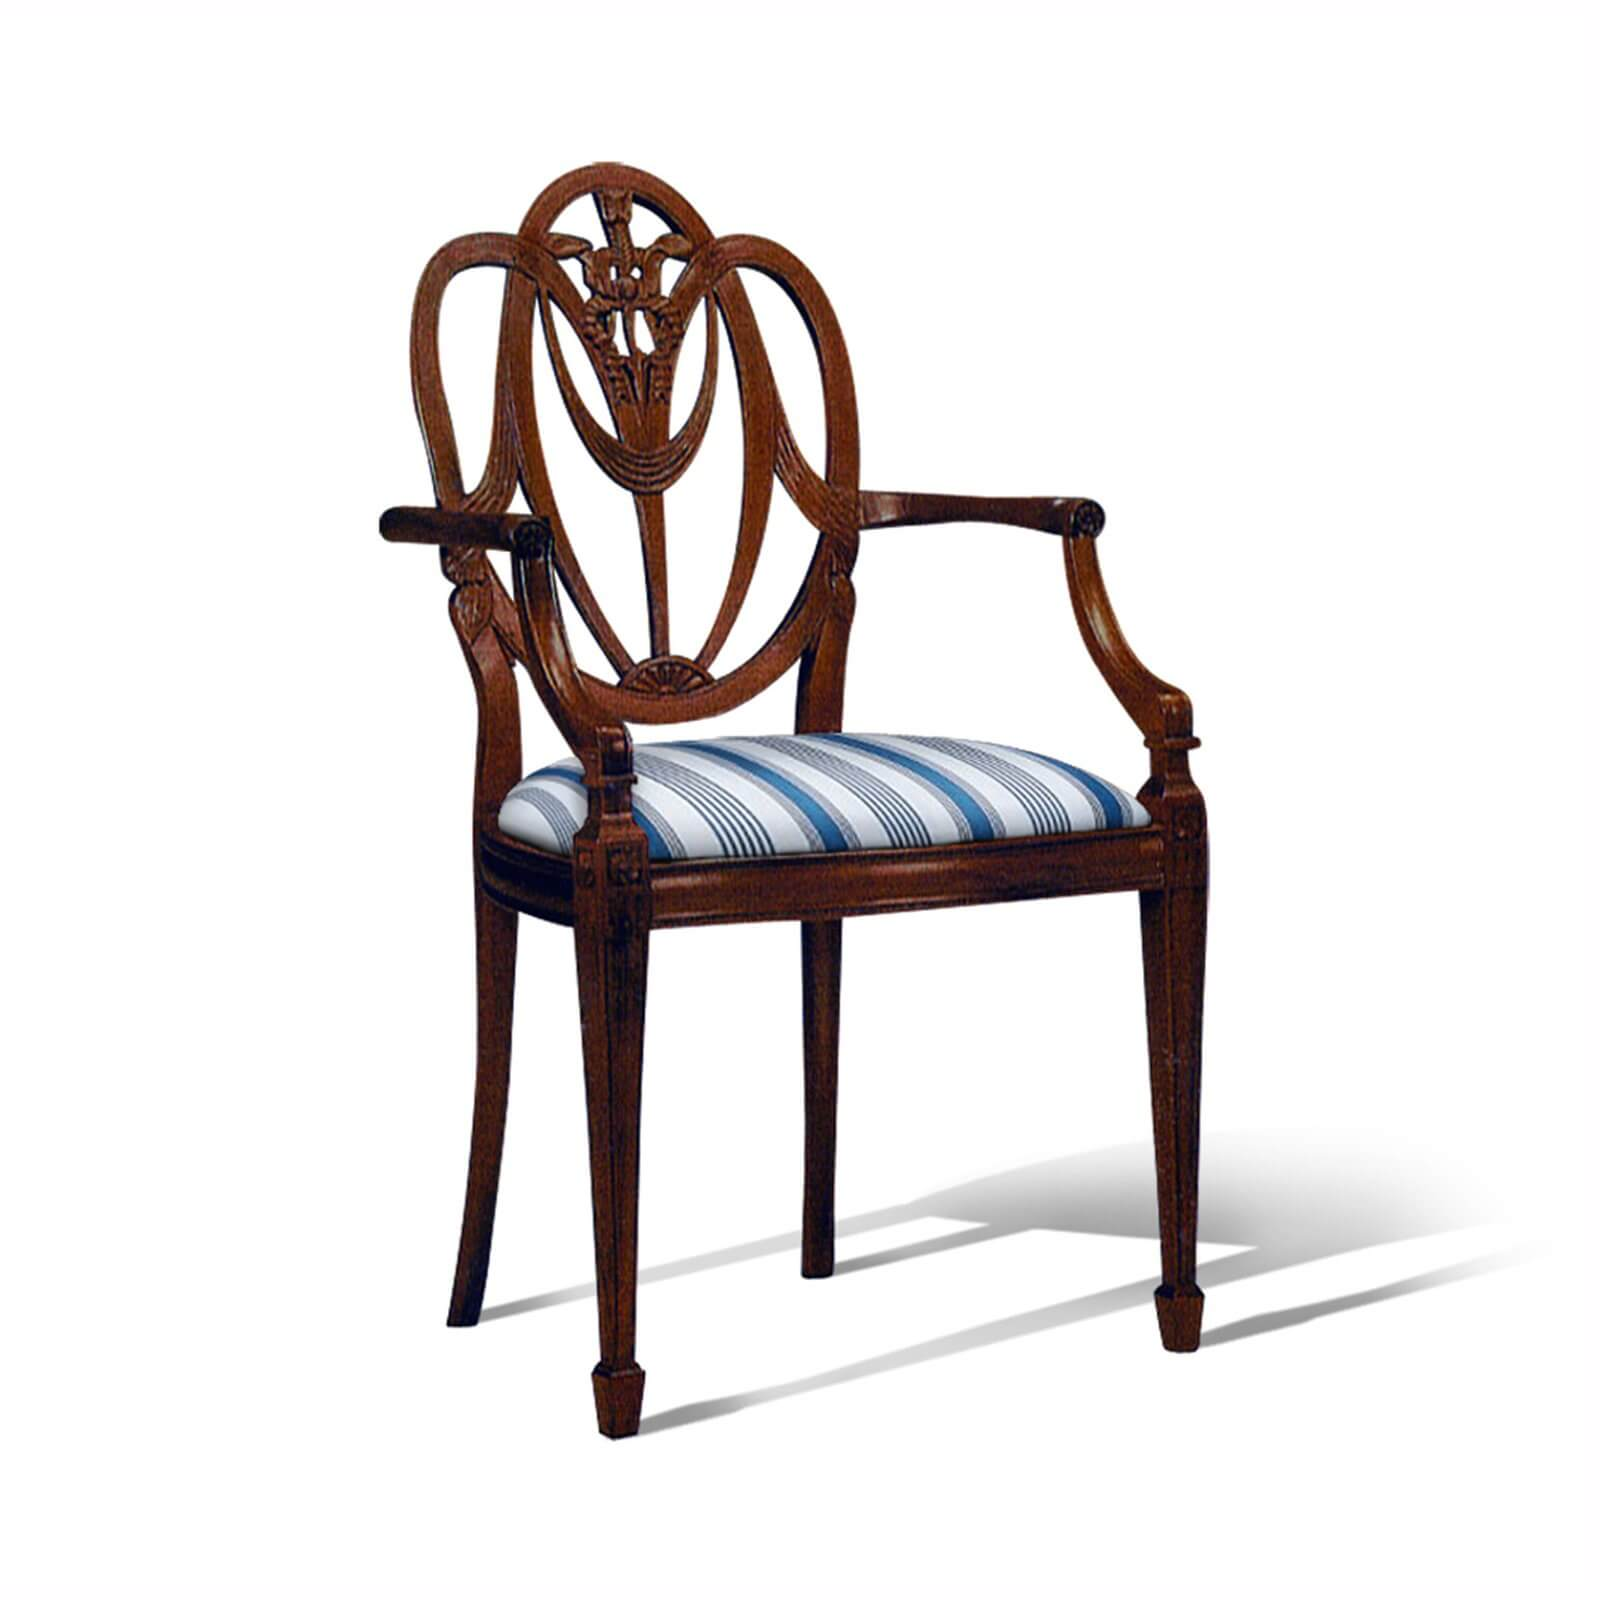 HEPPLEWHITE ARM CHAIR - STUART MEMBERY HOME COLLECTION